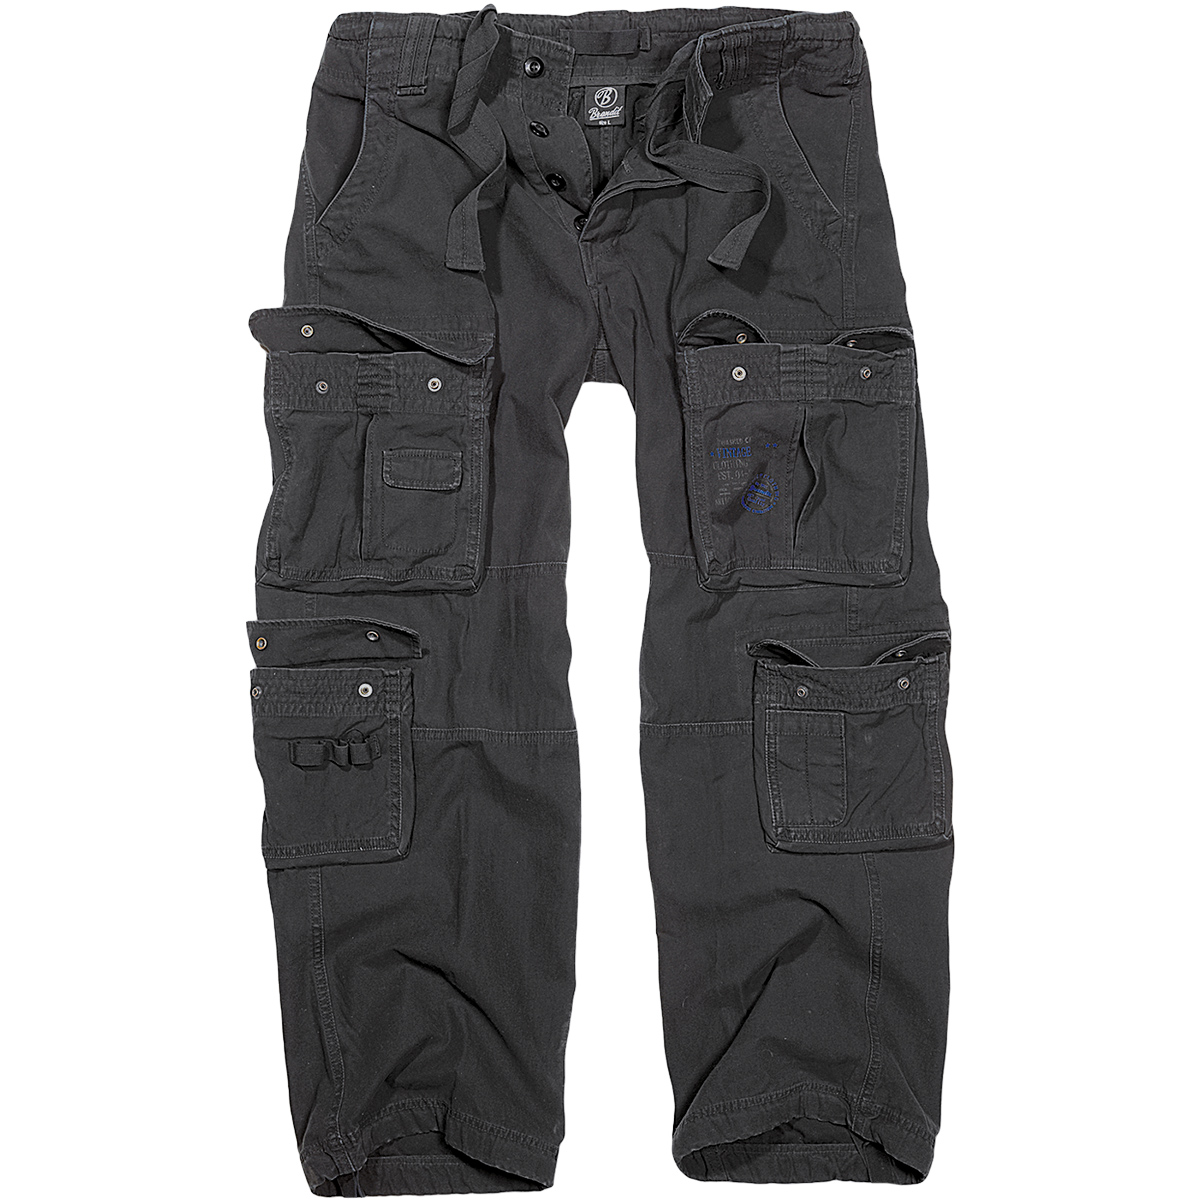 BRANDIT MENS PURE VINTAGE POLICE COMBAT TROUSERS SECURITY ...